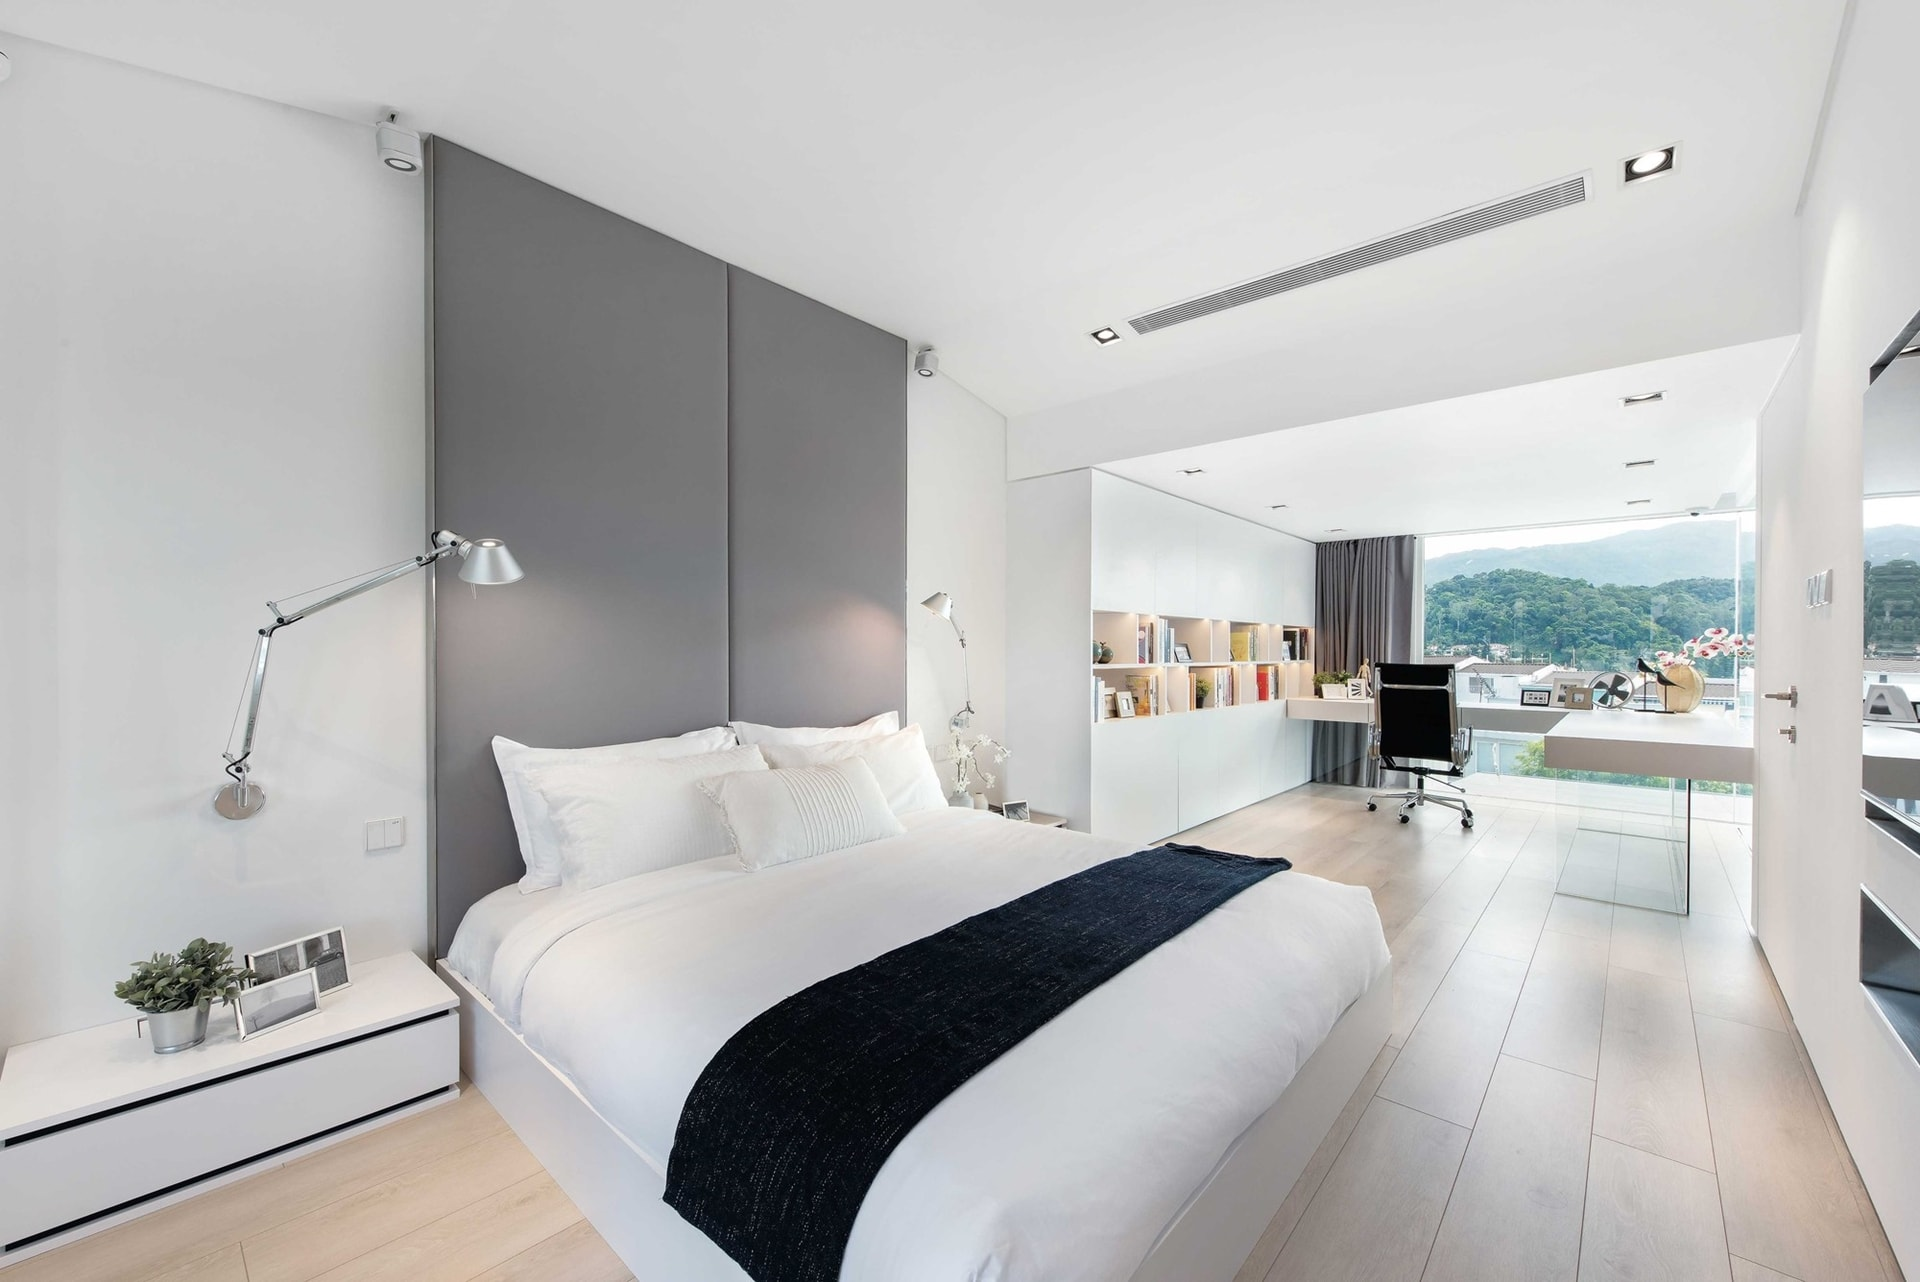 Minimalist Bedroom In Modern Minimalist House By Millimeter Interior Design